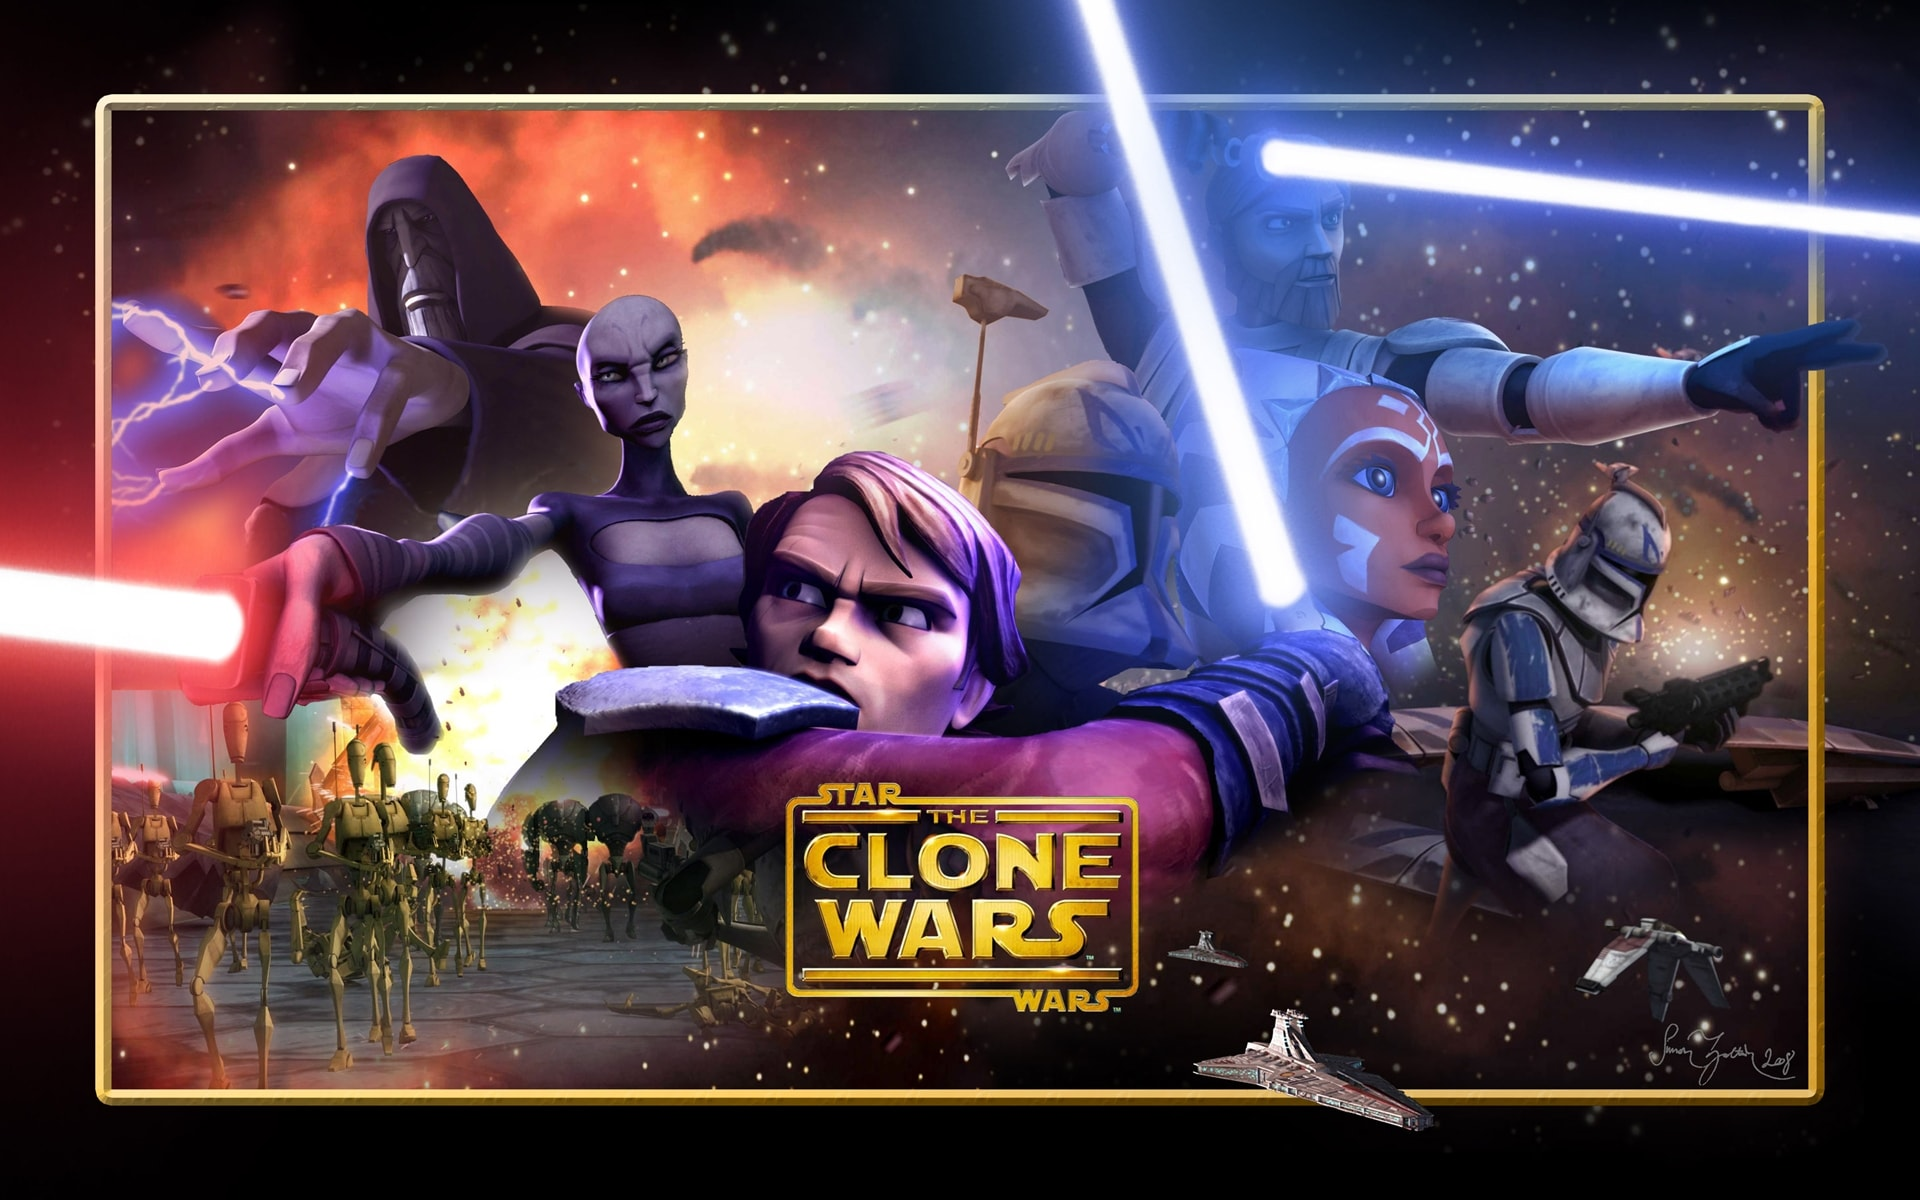 Wallpaper Star Wars Clone Wars